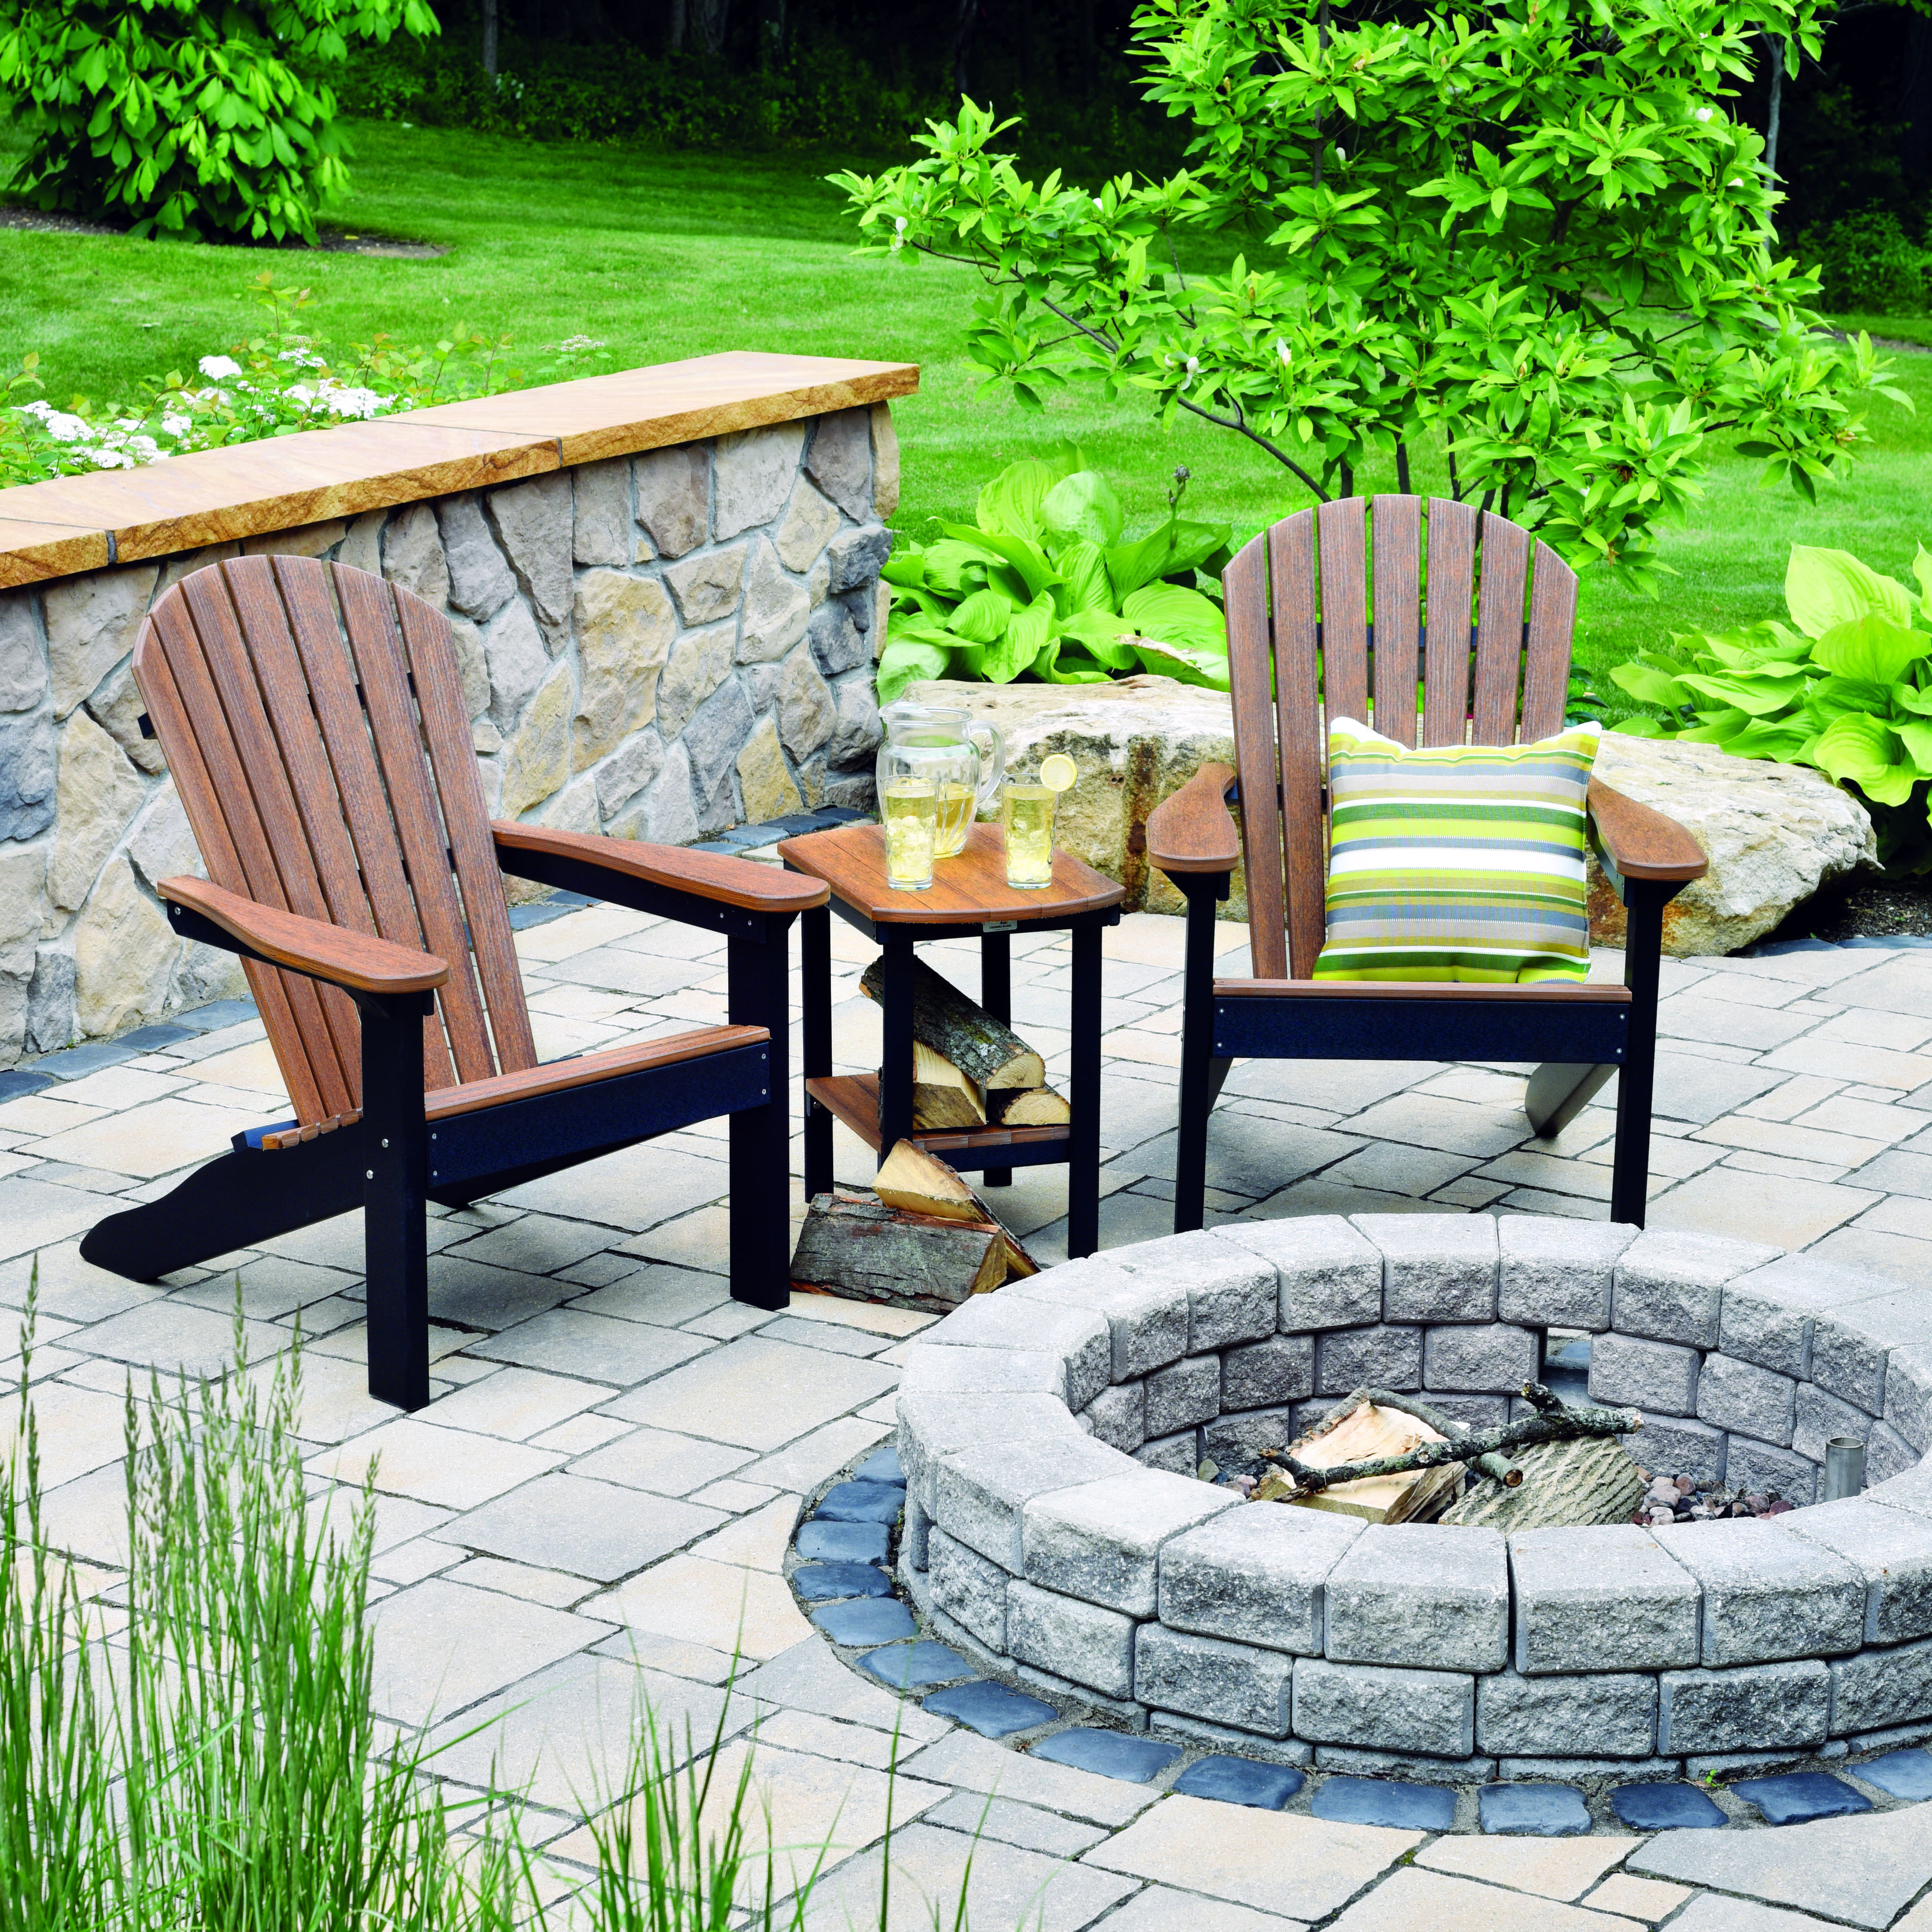 Poly Lumber & POLYWOOD mercial Outdoor Furniture